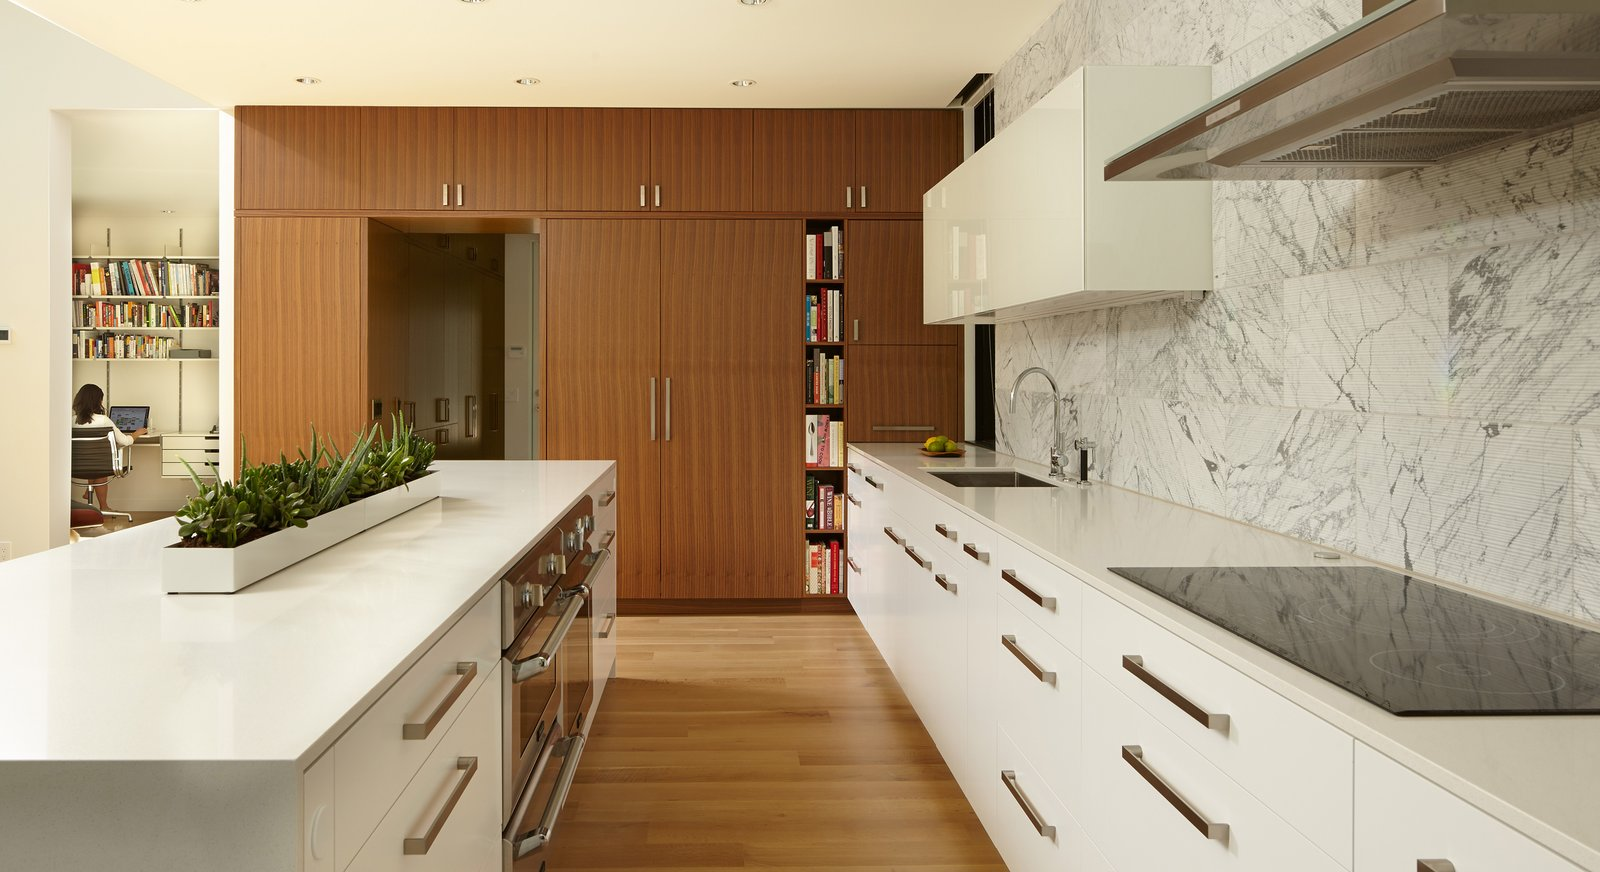 Tagged: Kitchen, White Cabinet, Light Hardwood Floor, Engineered Quartz Counter, Wood Cabinet, Ceiling Lighting, Stone Tile Backsplashe, Range Hood, Wall Oven, Refrigerator, Cooktops, and Drop In Sink.  Sheridan Residence by Peterssen/Keller Architecture